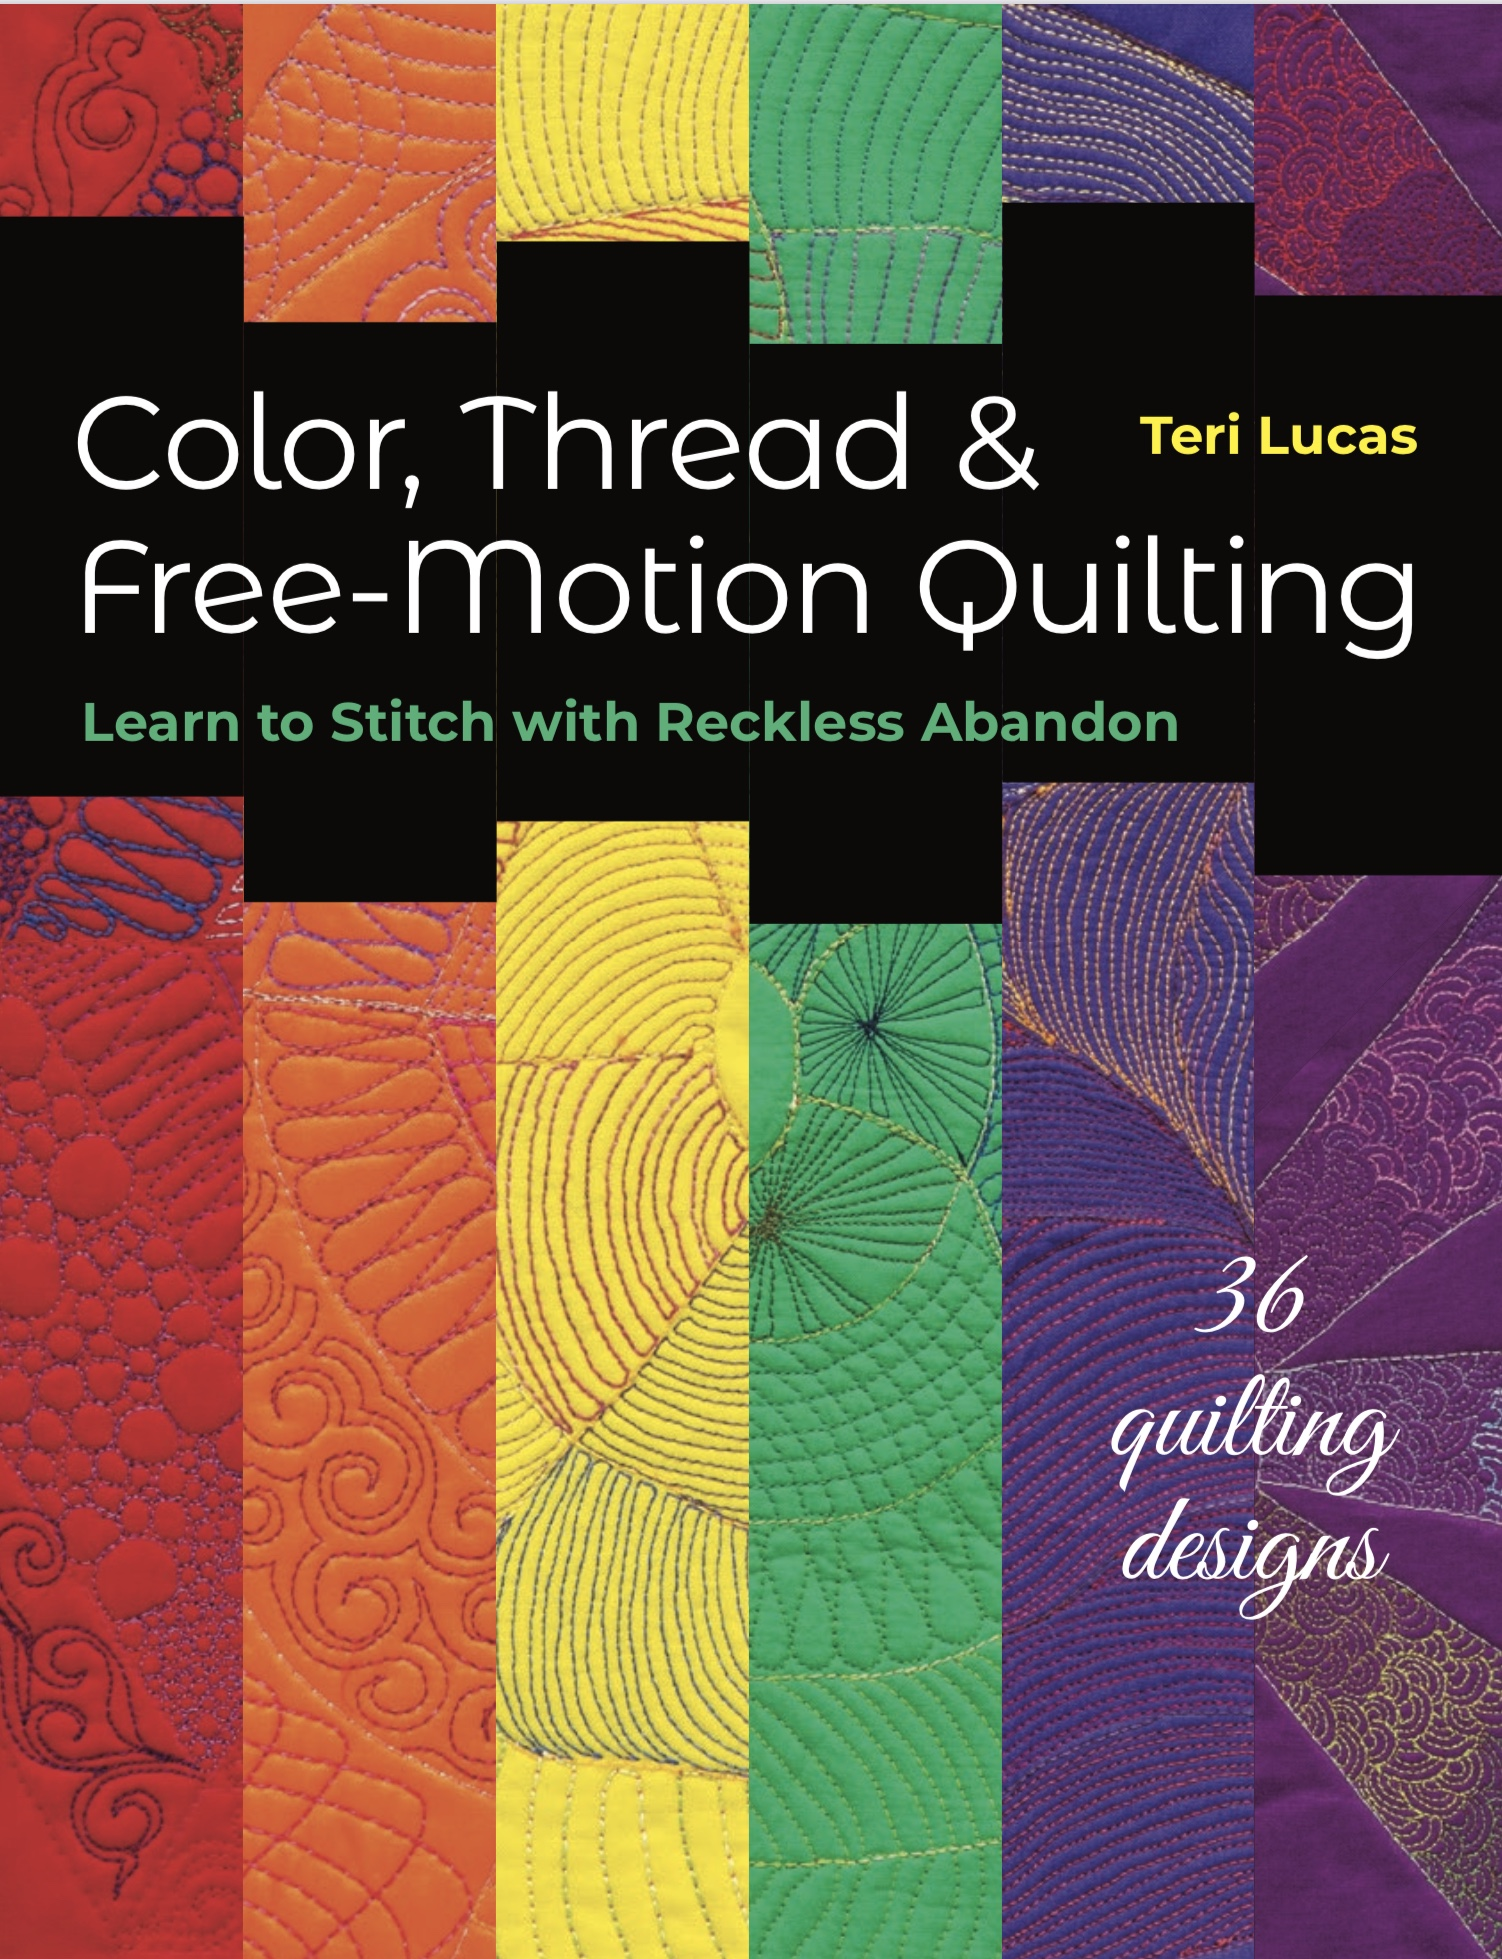 Color, Thread & Free-Motion Quilting {book review}